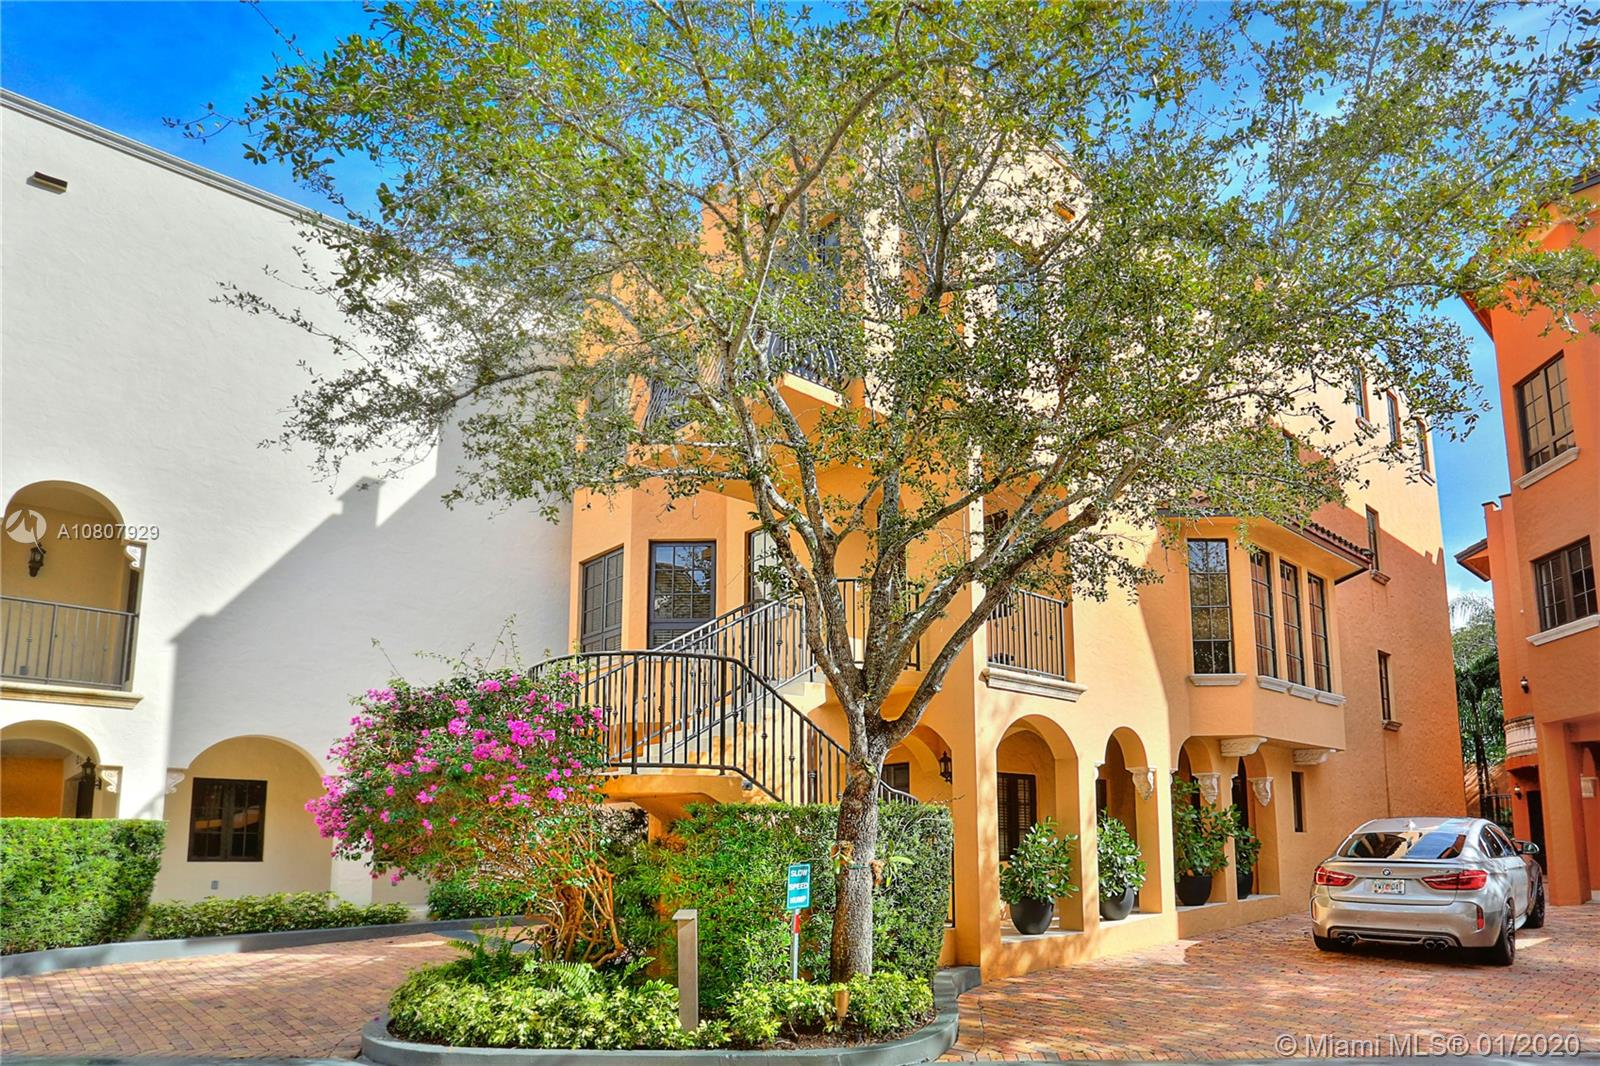 Stunning villa with a modern vibe in the exclusive, gated enclave of Cloisters on the Bay. Just steps to the Grove village center's galleries, boutiques, cafes and bayfront parks & marinas. Enter the 2nd level main entrance into light-filled, expansive living & formal dining area, private den/office and oversized kitchen w/ sleek, euro-style cabinetry & separate breakfast room. Ground level guest suite offers private entrance + large family room. Third level - 3 BR's w/ ensuite baths, including the luxurious master suite featuring a private balcony & marble bath w/soaking tub & glass-enclosed shower. Enjoy panoramic views & bay breezes from the sweeping roof-top terrace. Elevator to all levels.  2 CG. Community amenities: 24/7 guard gate, heated pool, lighted clay tennis court & clubhouse.